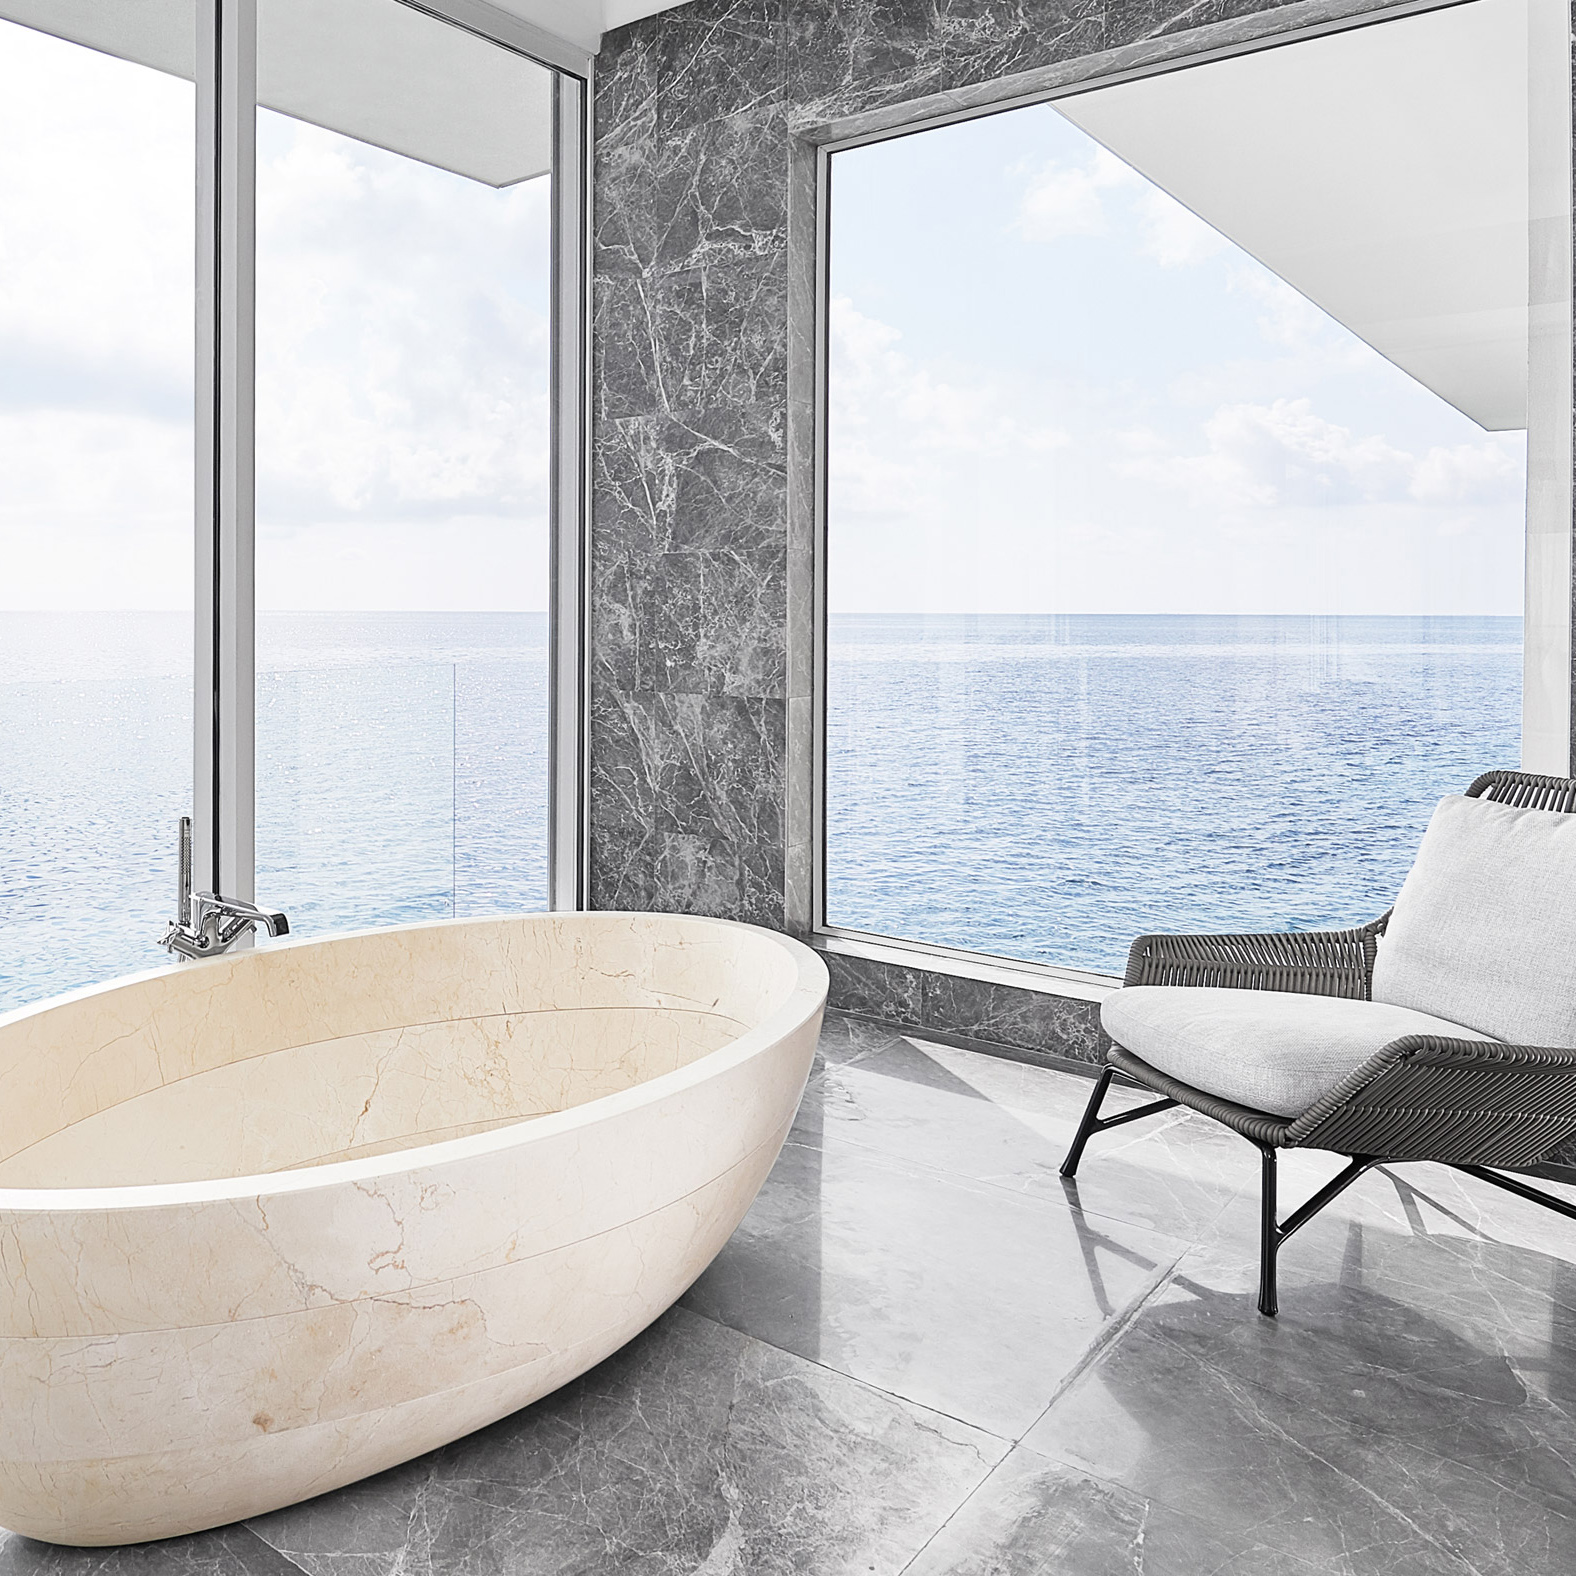 Bath room design with sea views